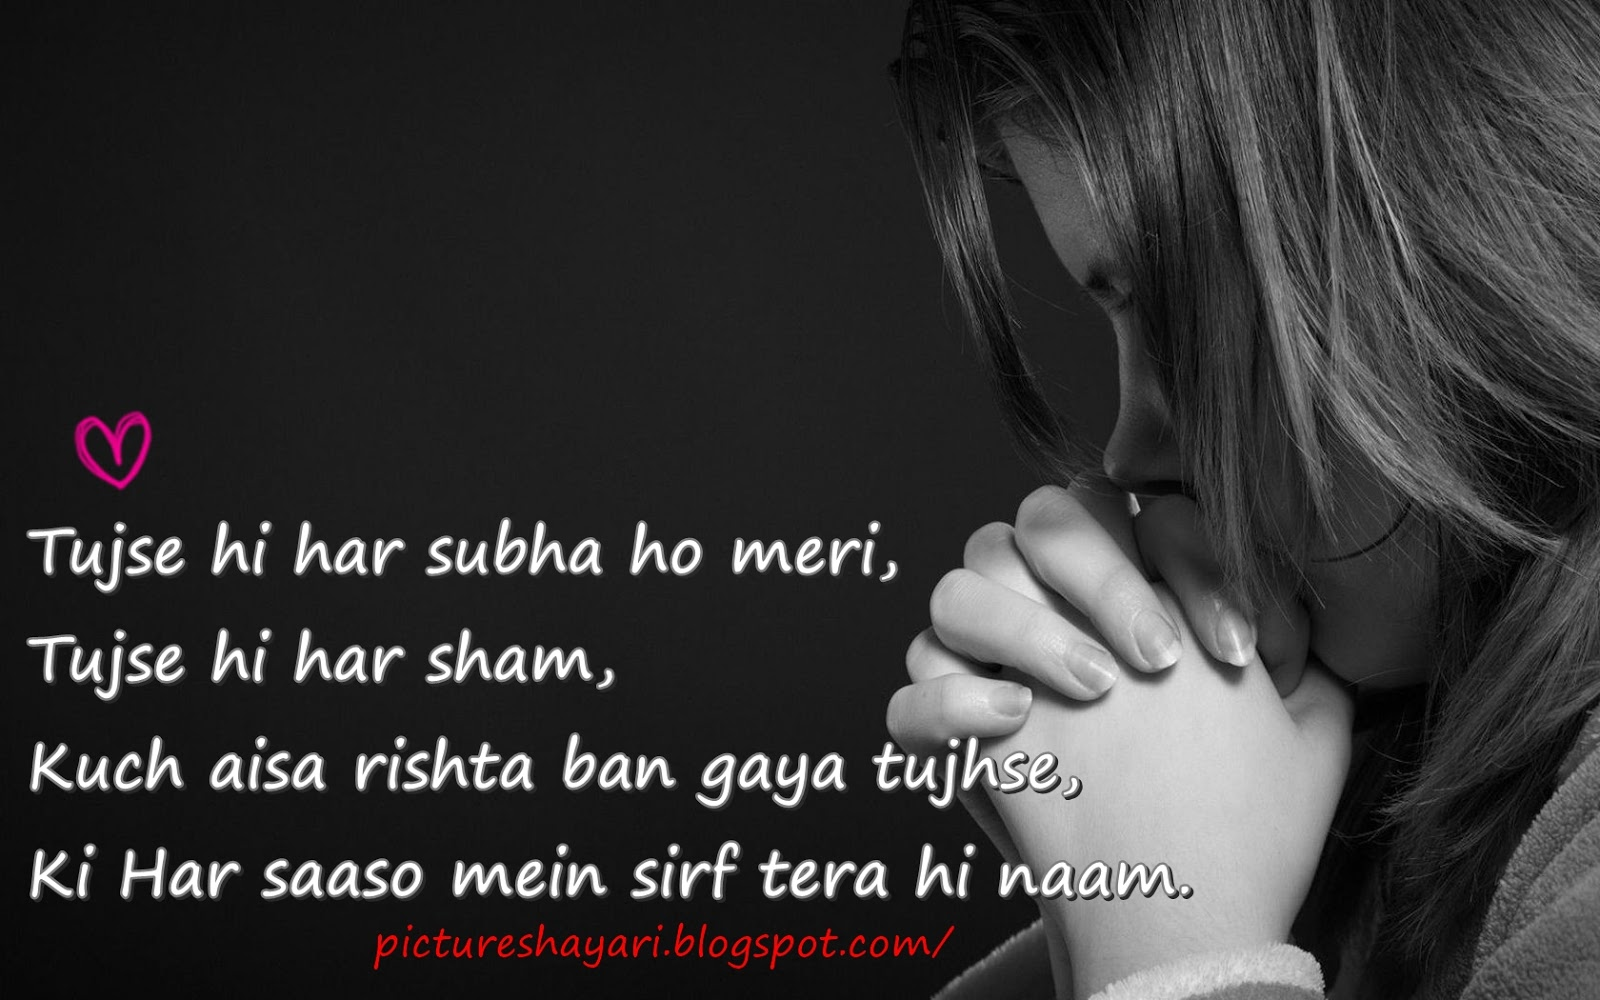 Love-Sms Shayari with Pictures | Best Shayari With Pictures